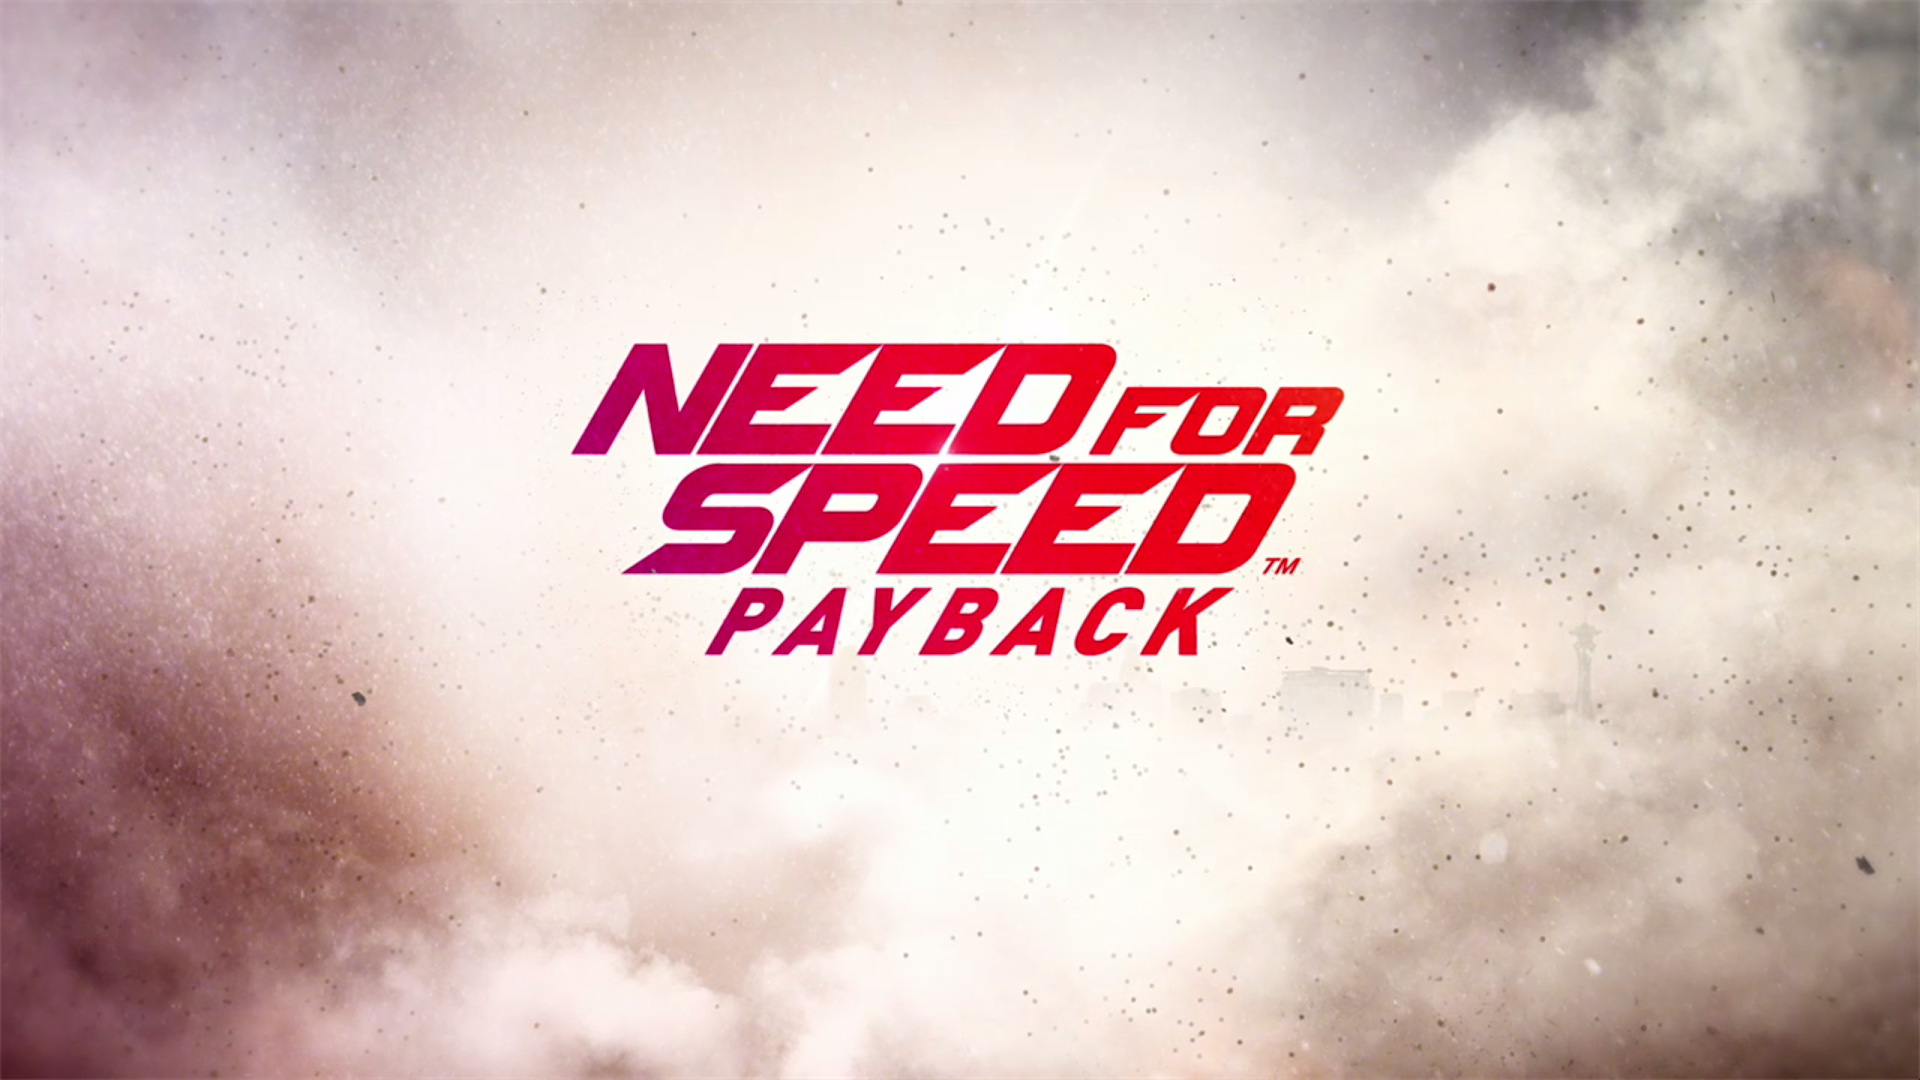 Top Mobiles Bank Need For Speed Payback Trailers Release Date